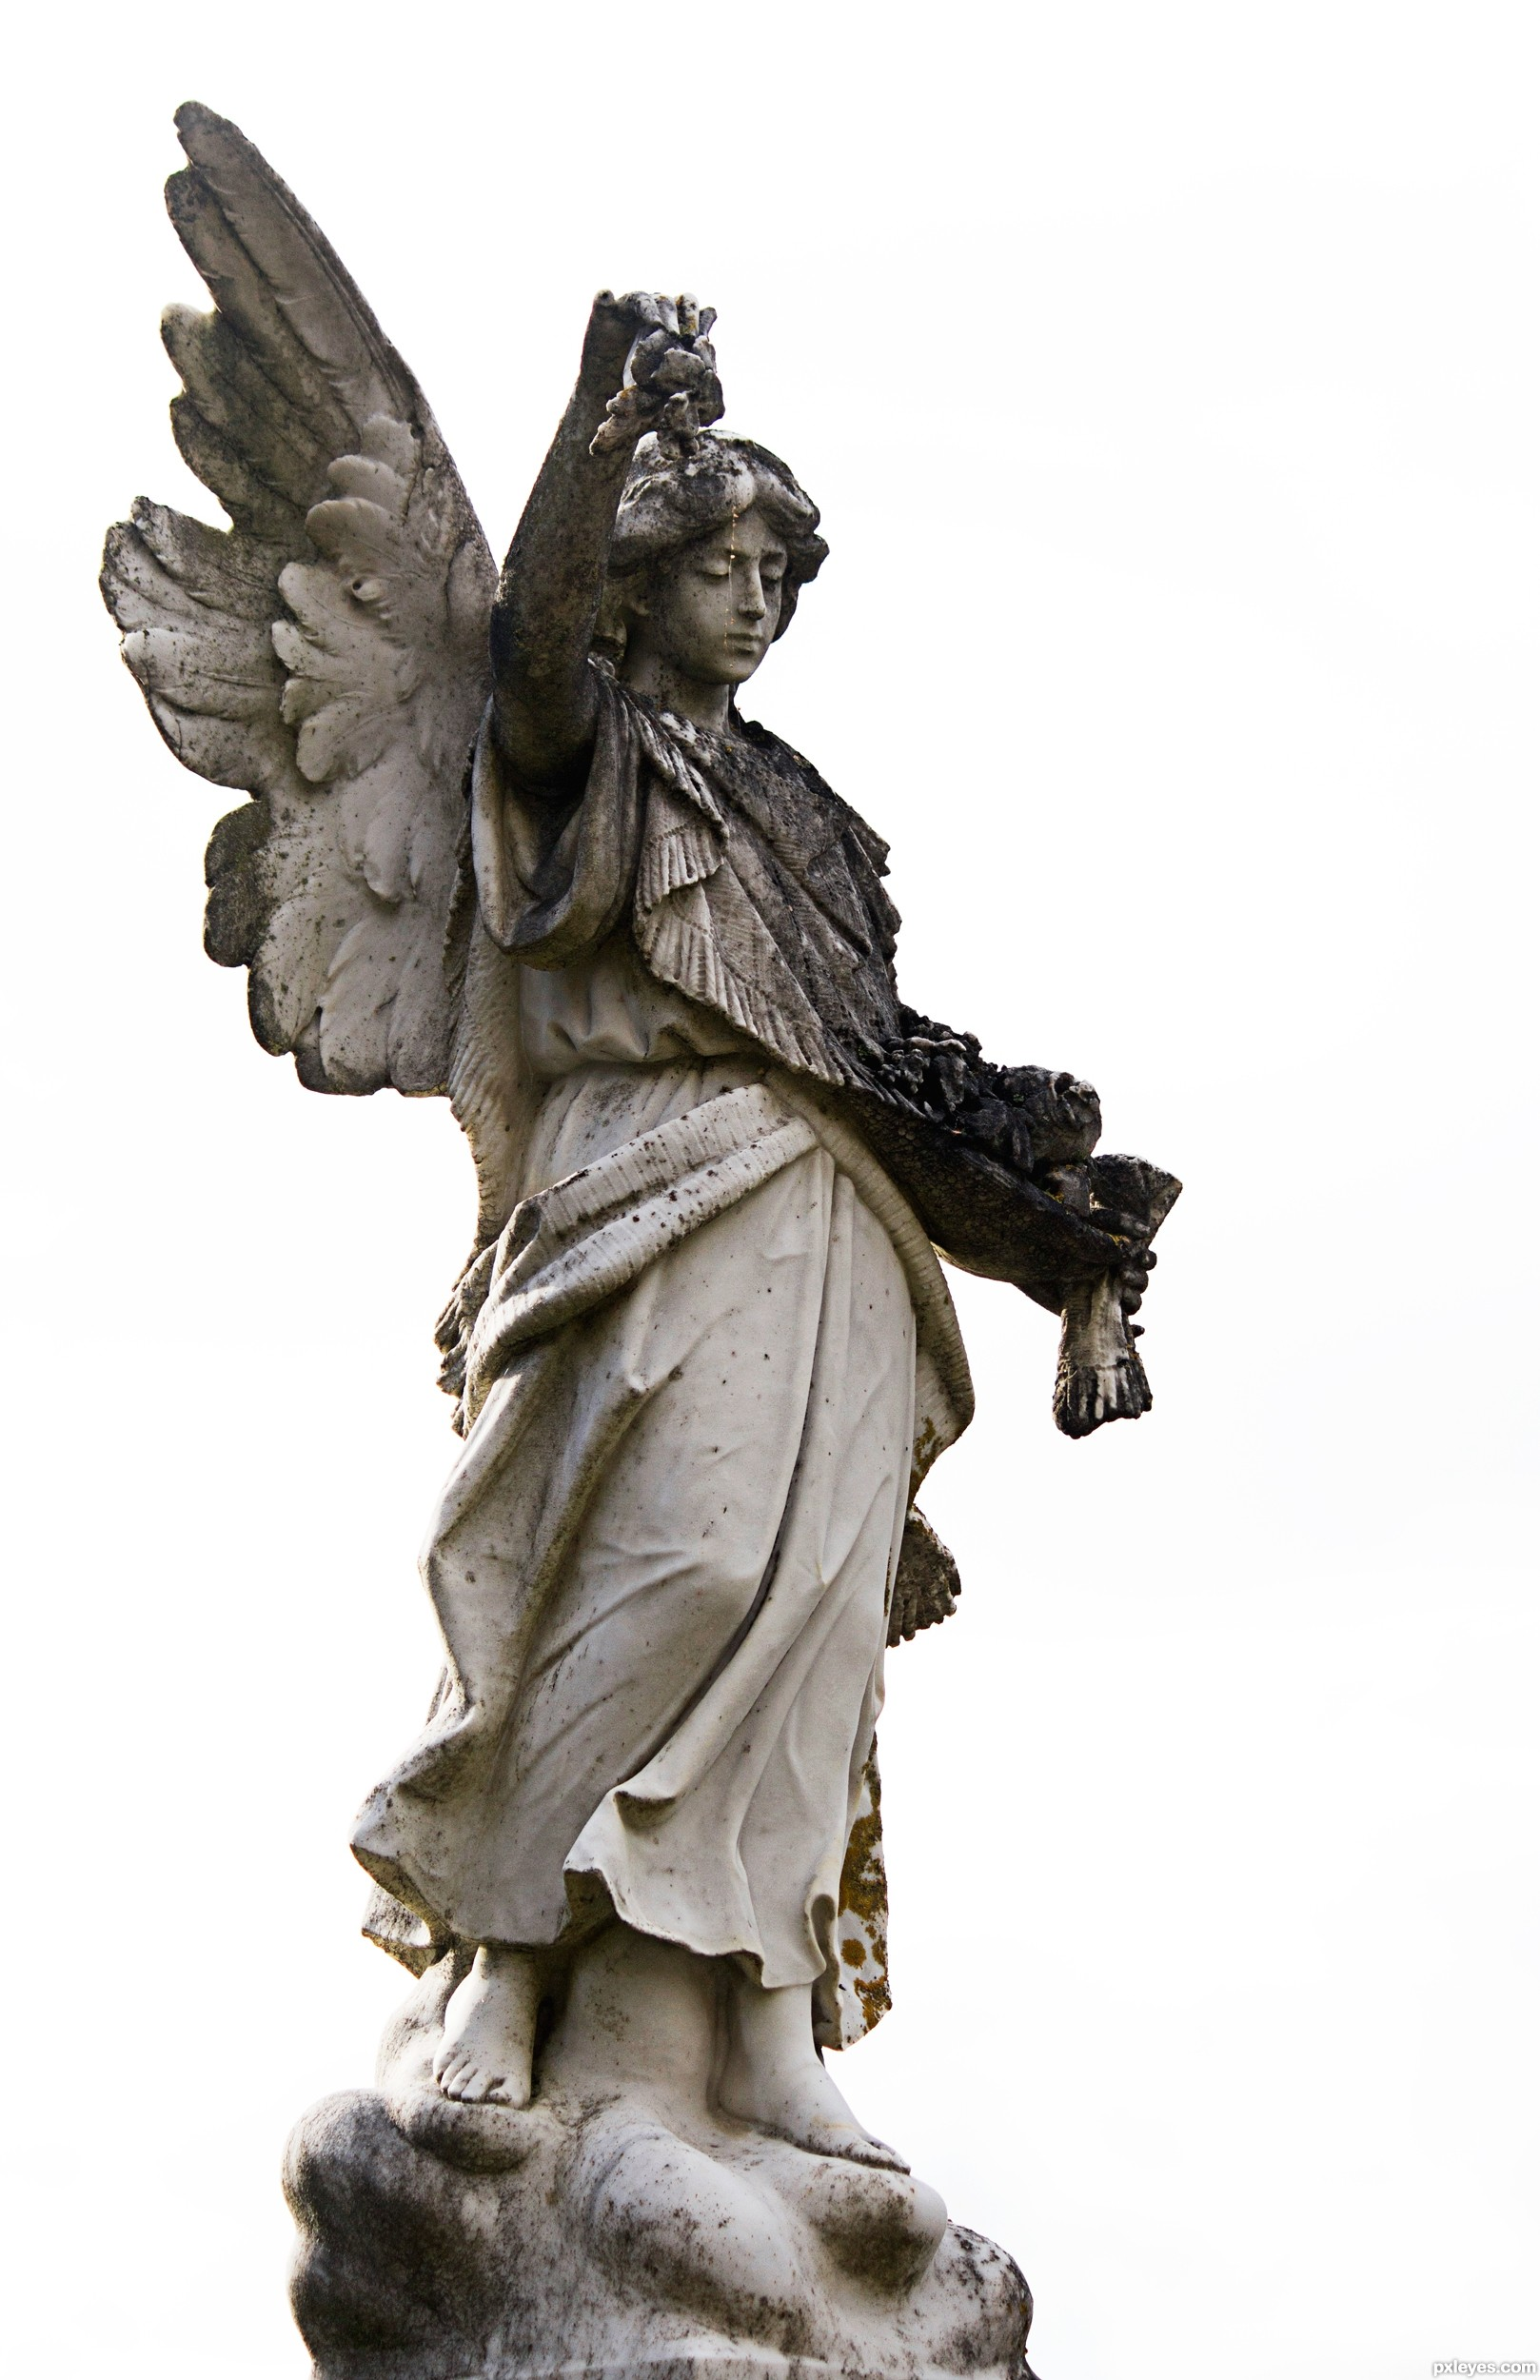 the stone angel Immediately download the the stone angel summary, chapter-by-chapter analysis, book notes, essays, quotes, character descriptions, lesson plans, and more - everything you need for studying or teaching the stone angel.